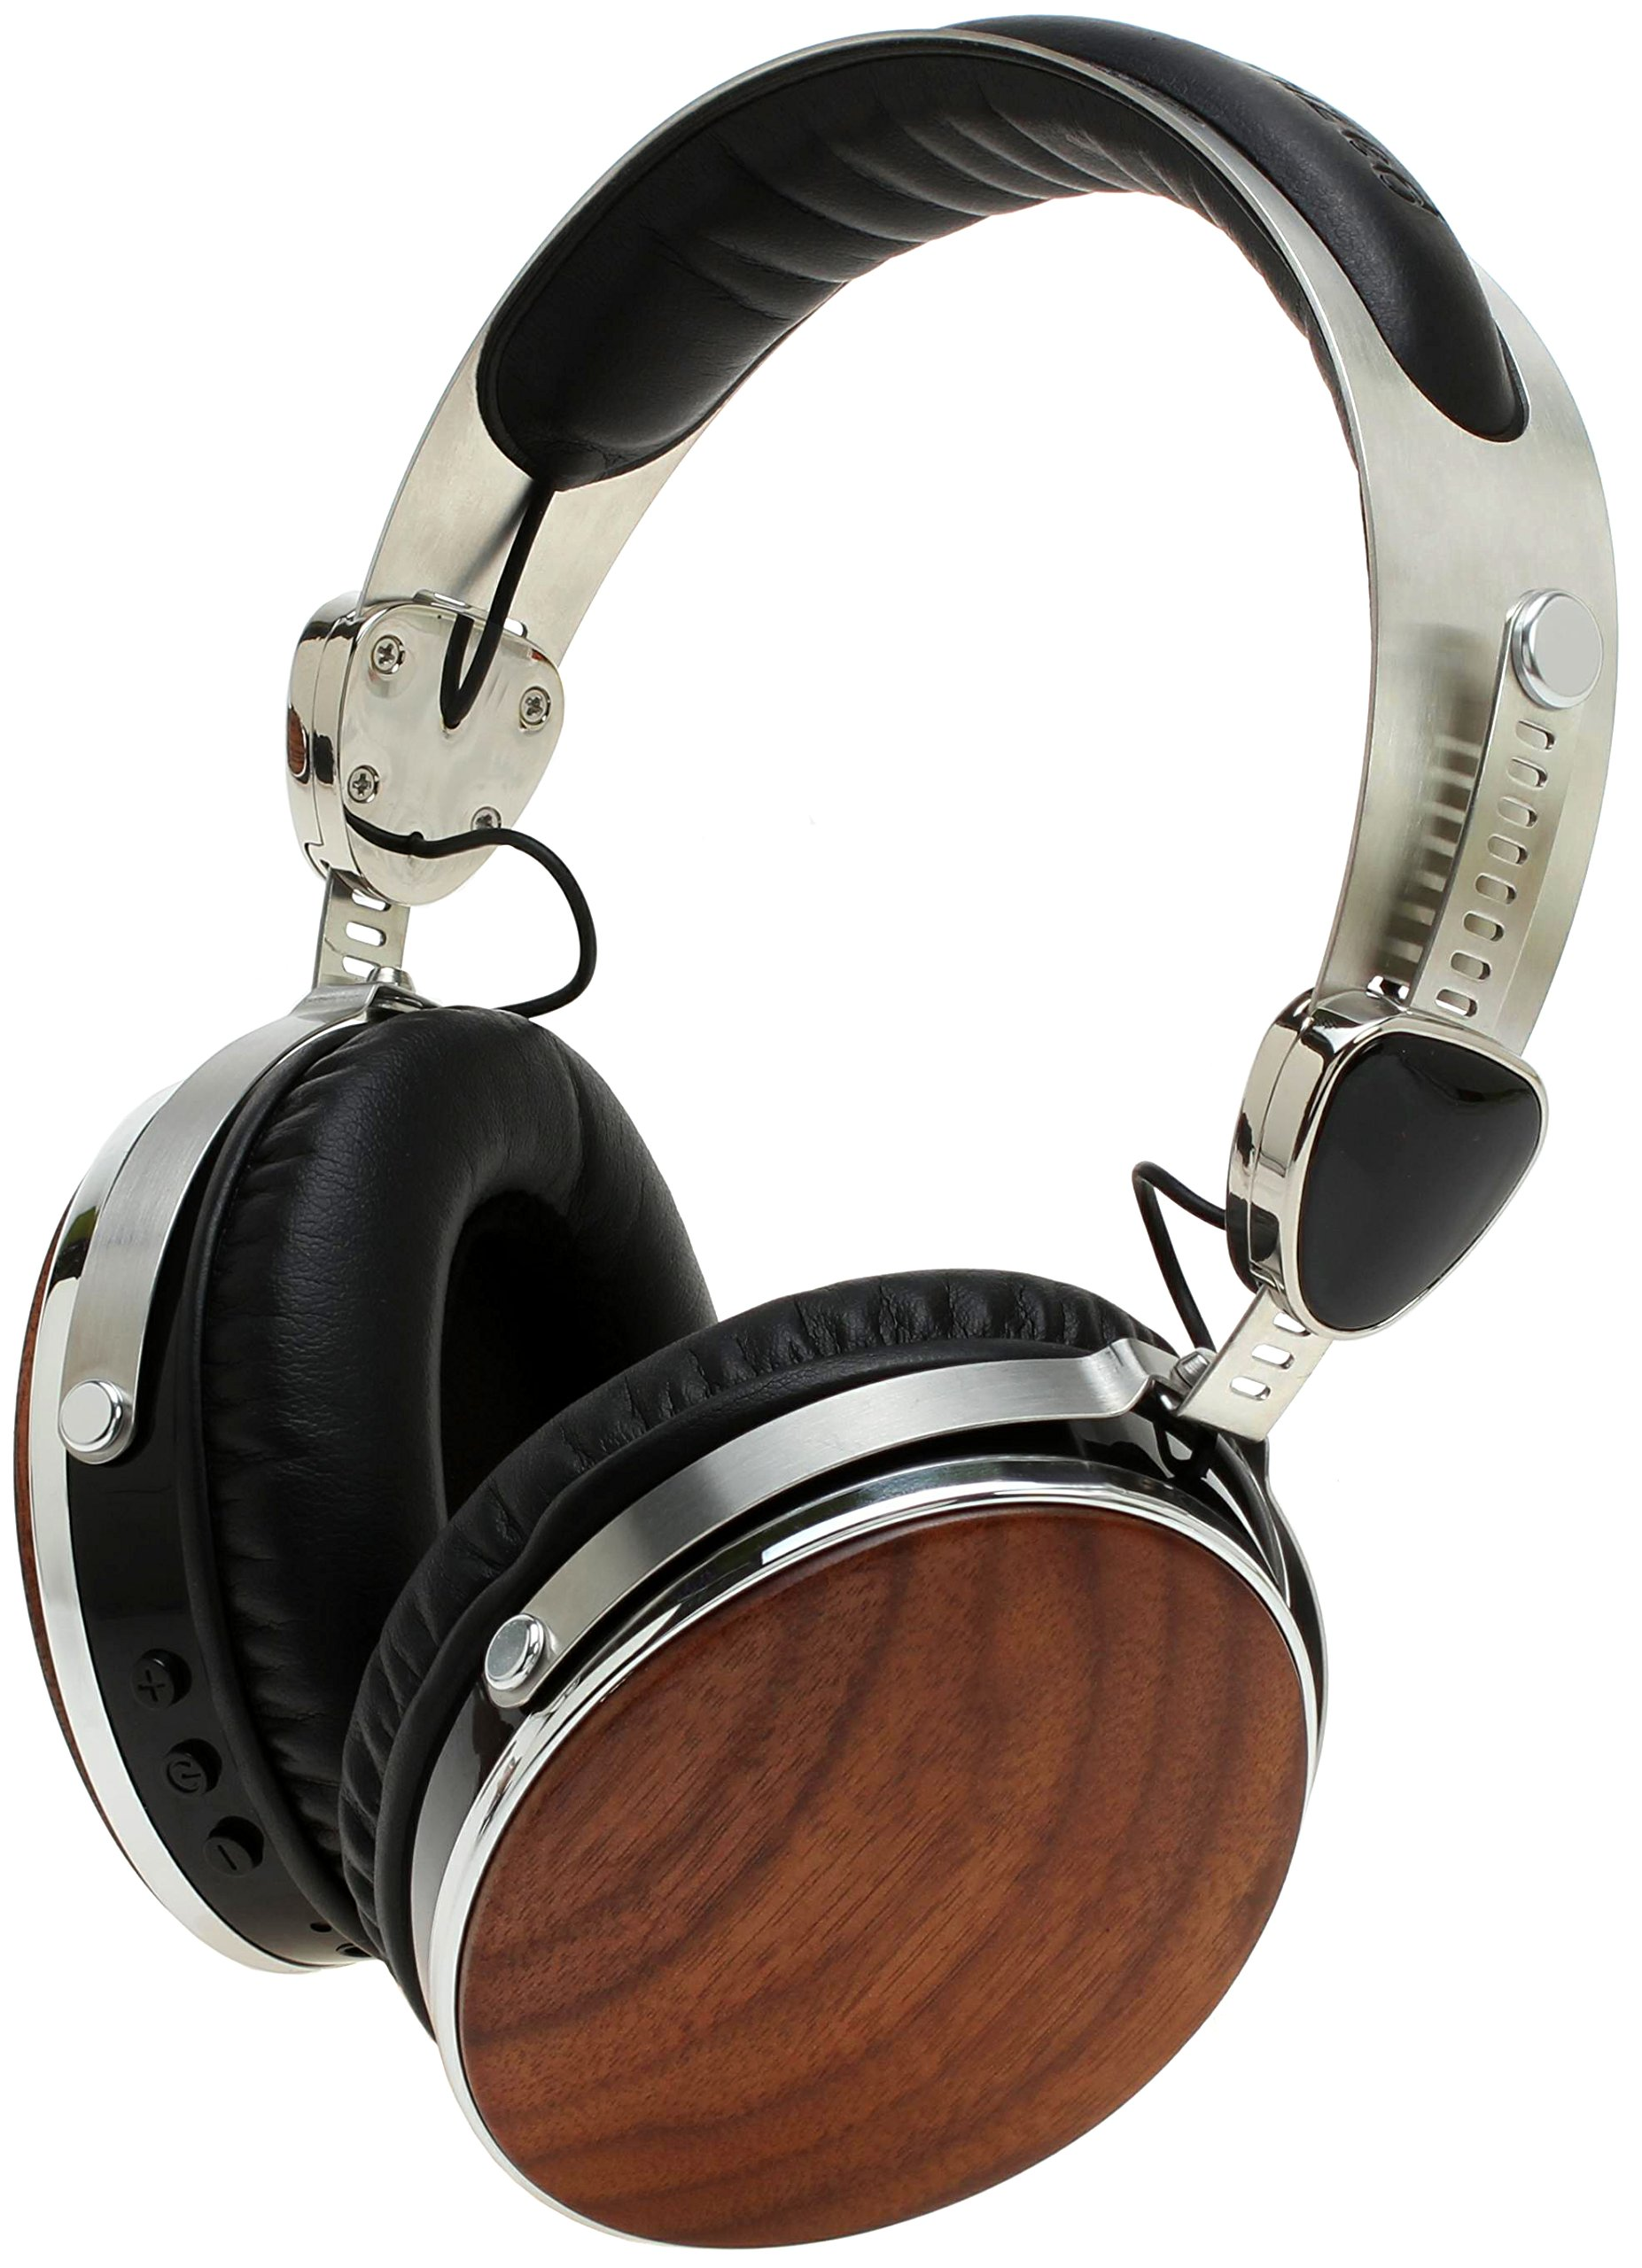 Symphonized Wraith 2.0 Bluetooth Genuine Wood Wireless Headphones with 3.5mm Cable Included for Wired Use (Walnut Wood)